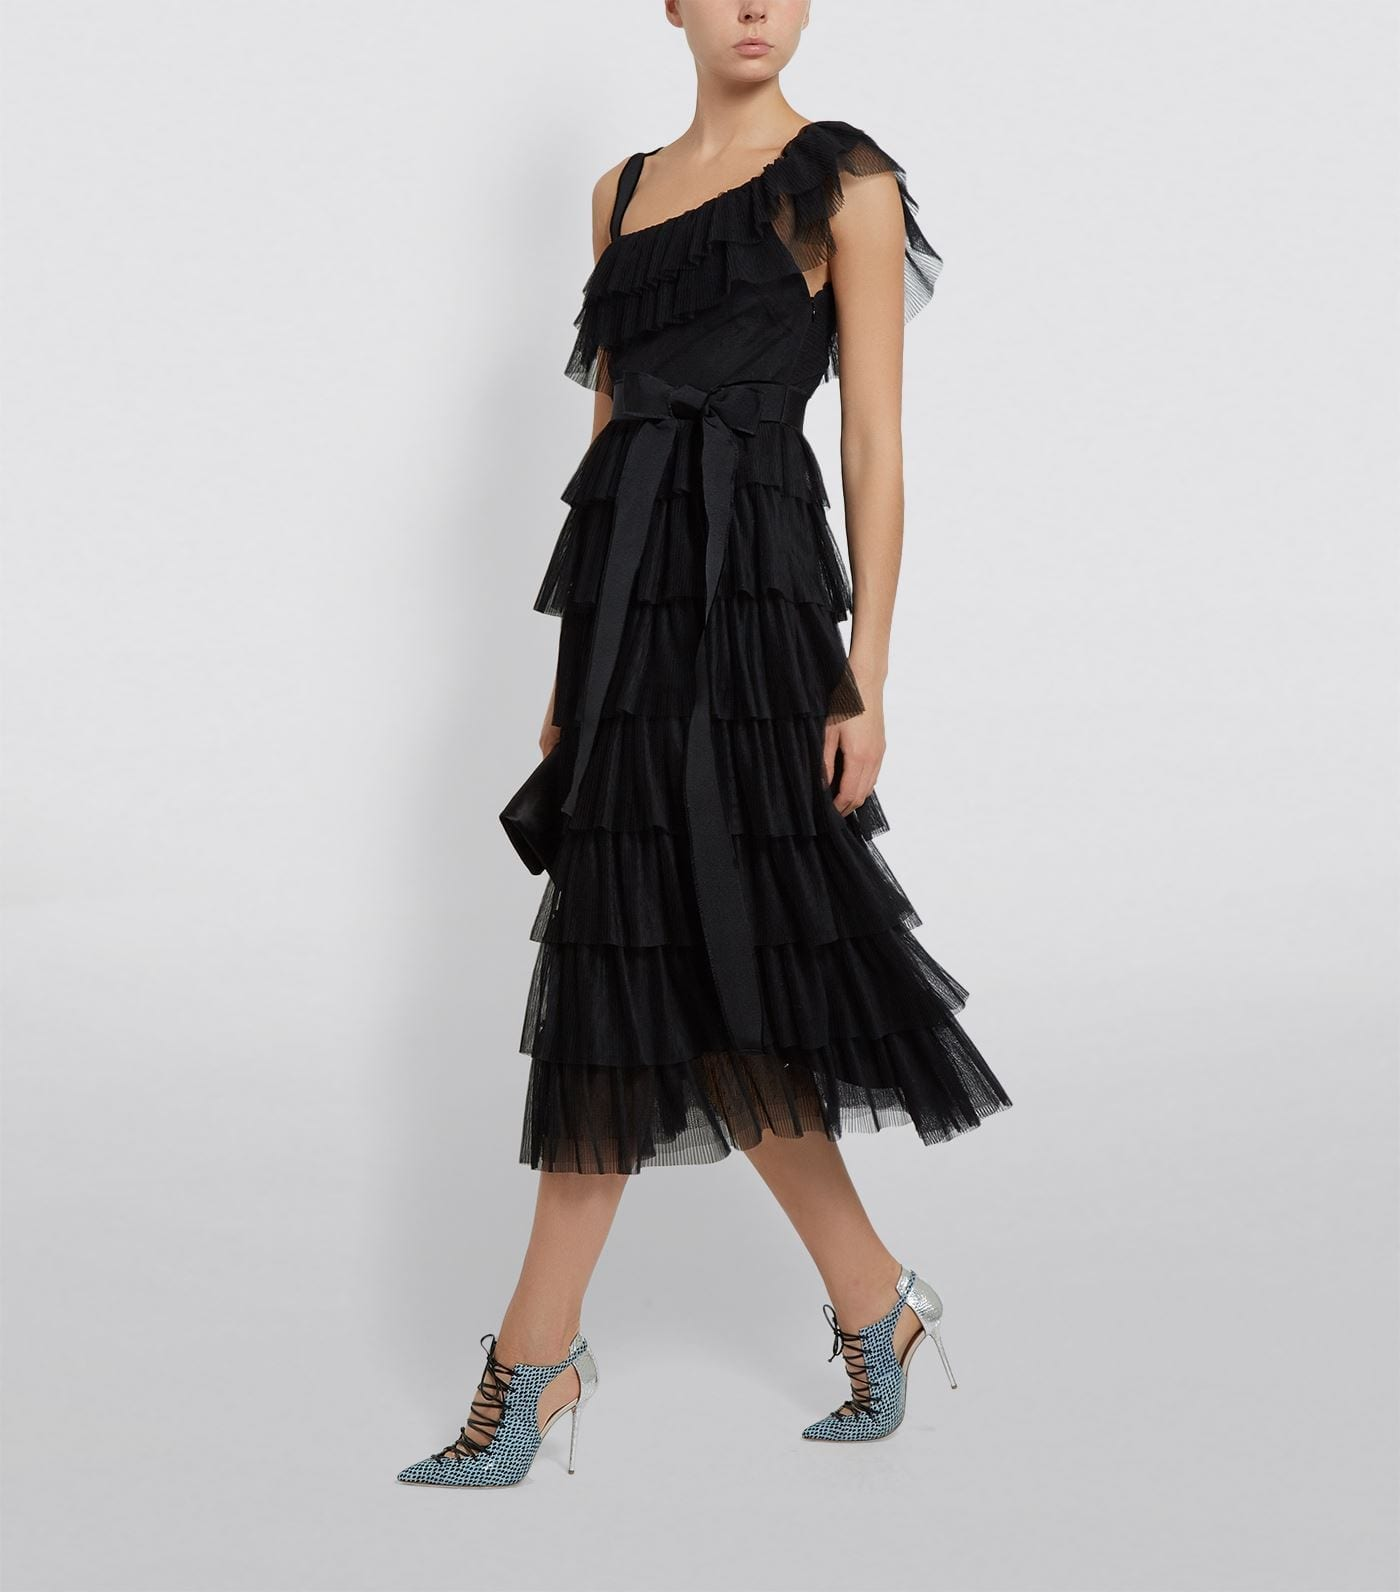 RED VALENTINO Asymmetric Tiered Ruffle Dress